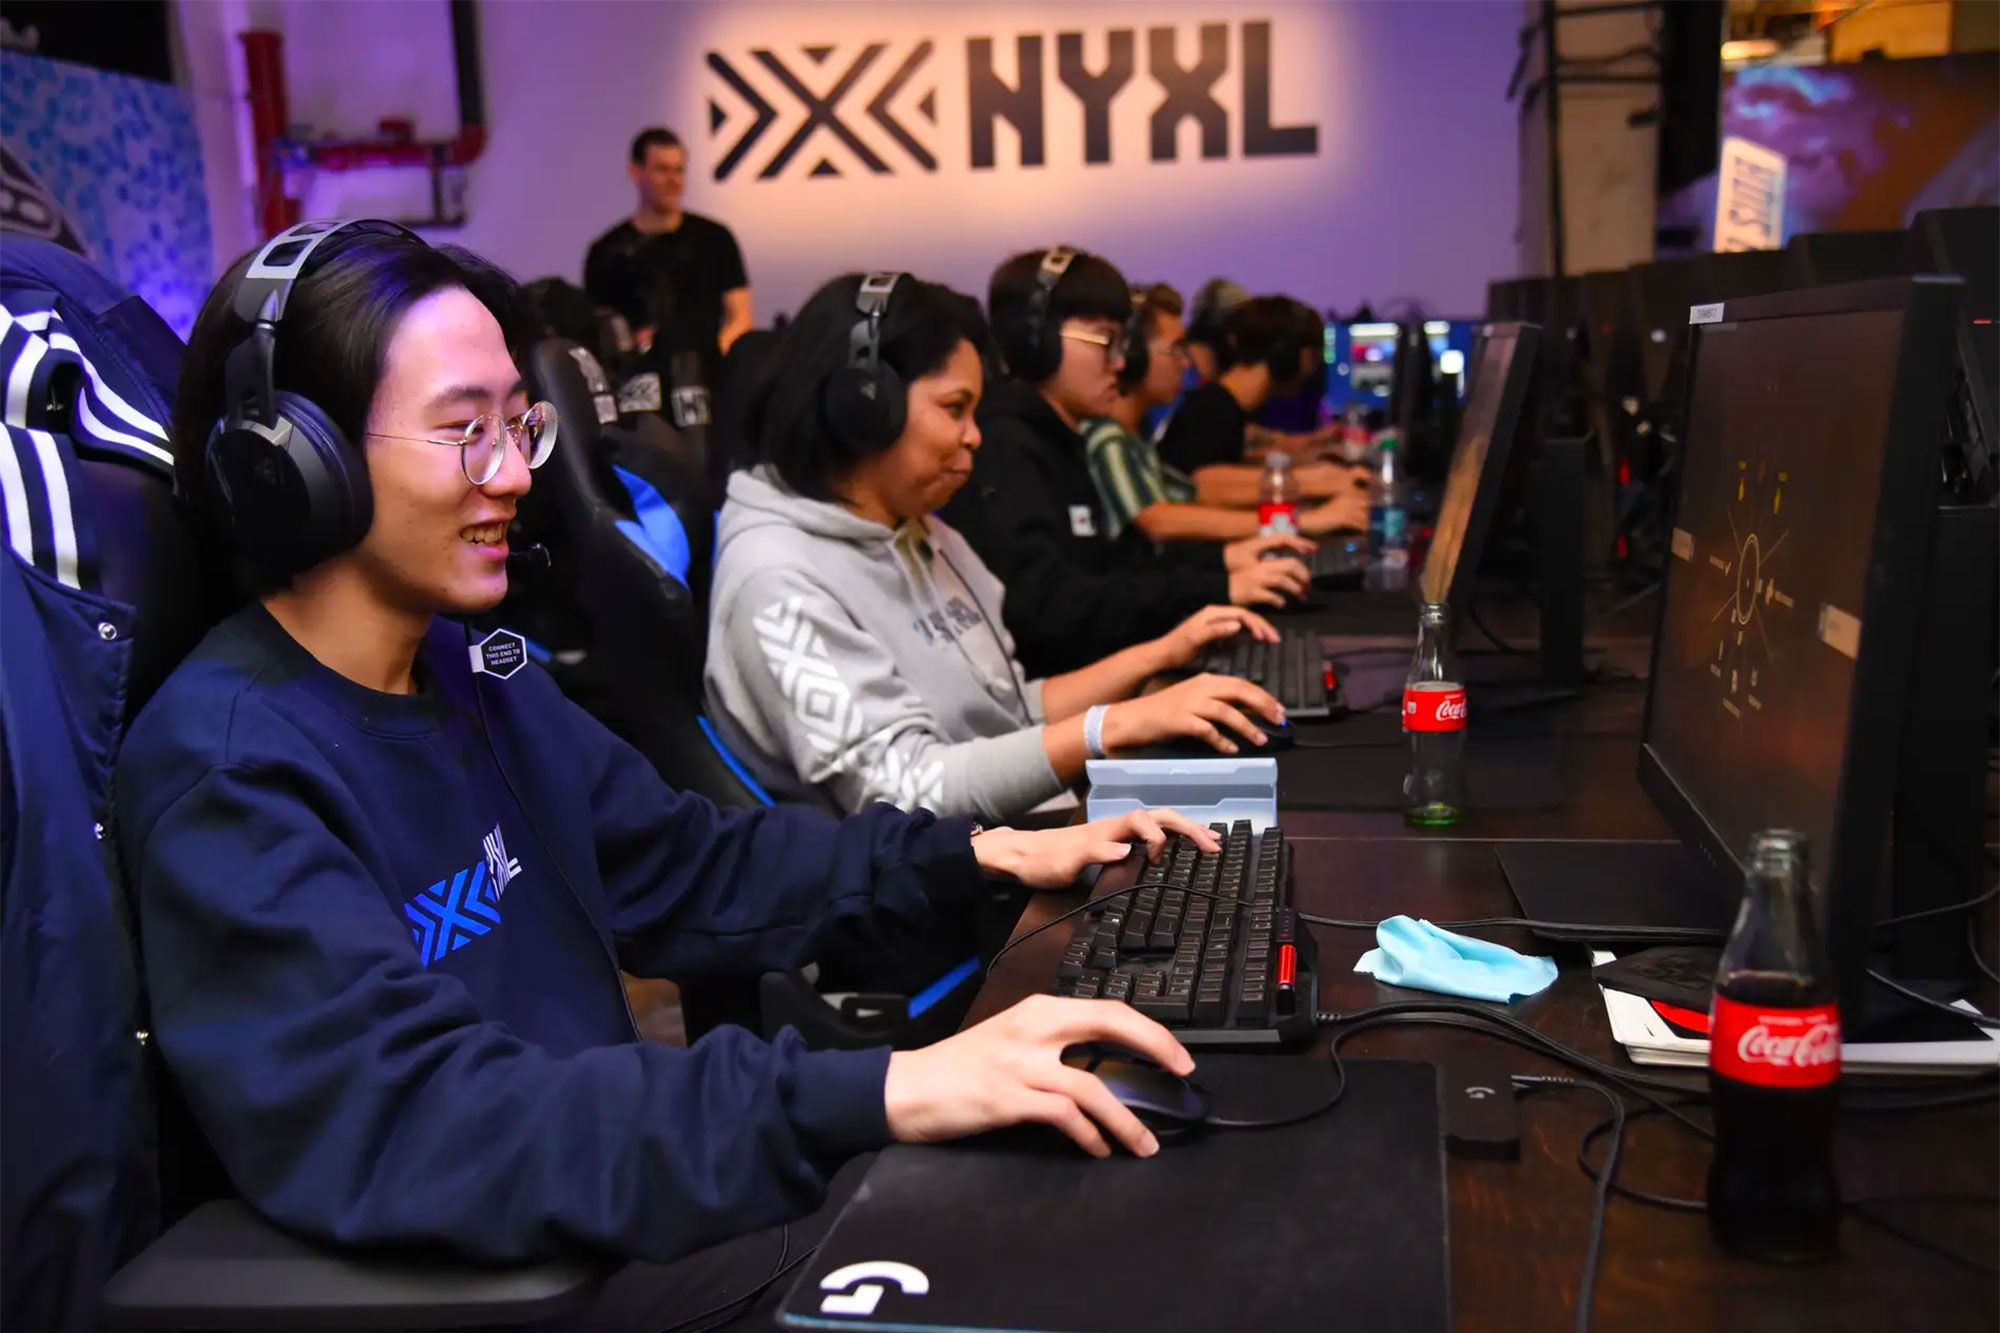 WeWork is Reportedly Getting Into Esports with Play By We, Which Could Rent Its Offfice Space for Professional Gaming Events